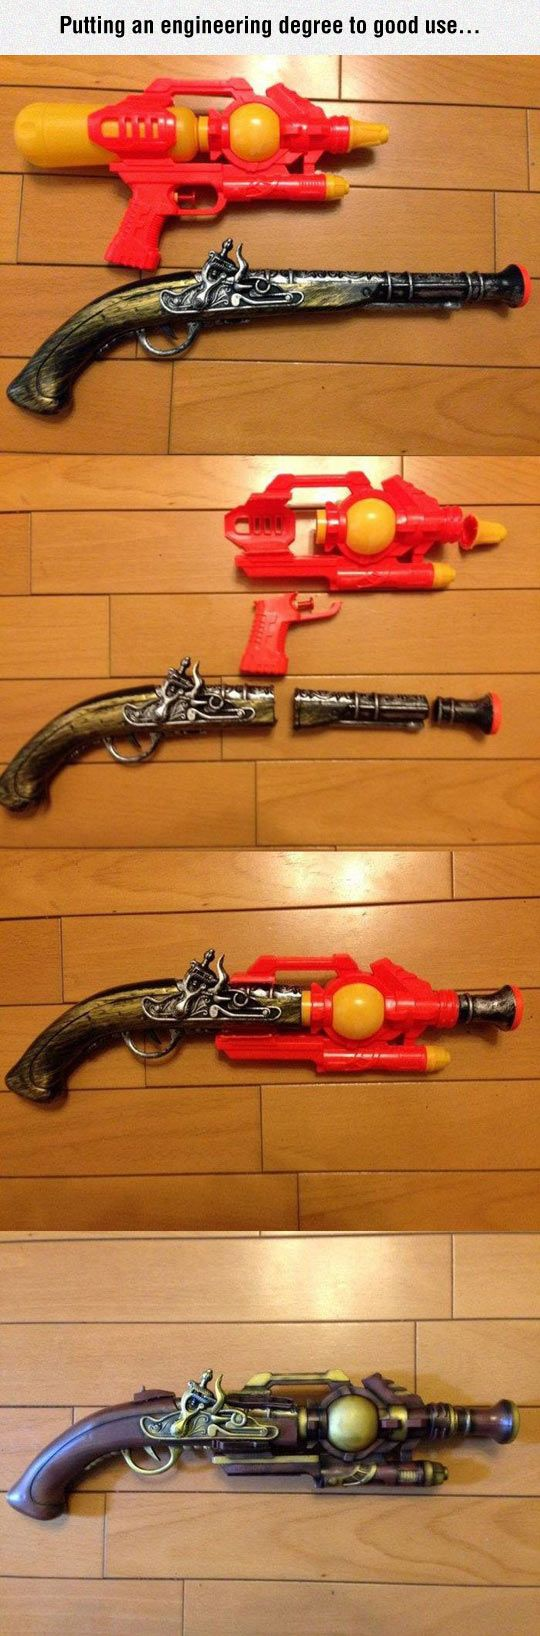 Make Your Own Steampunk Weapon #Funny #Images